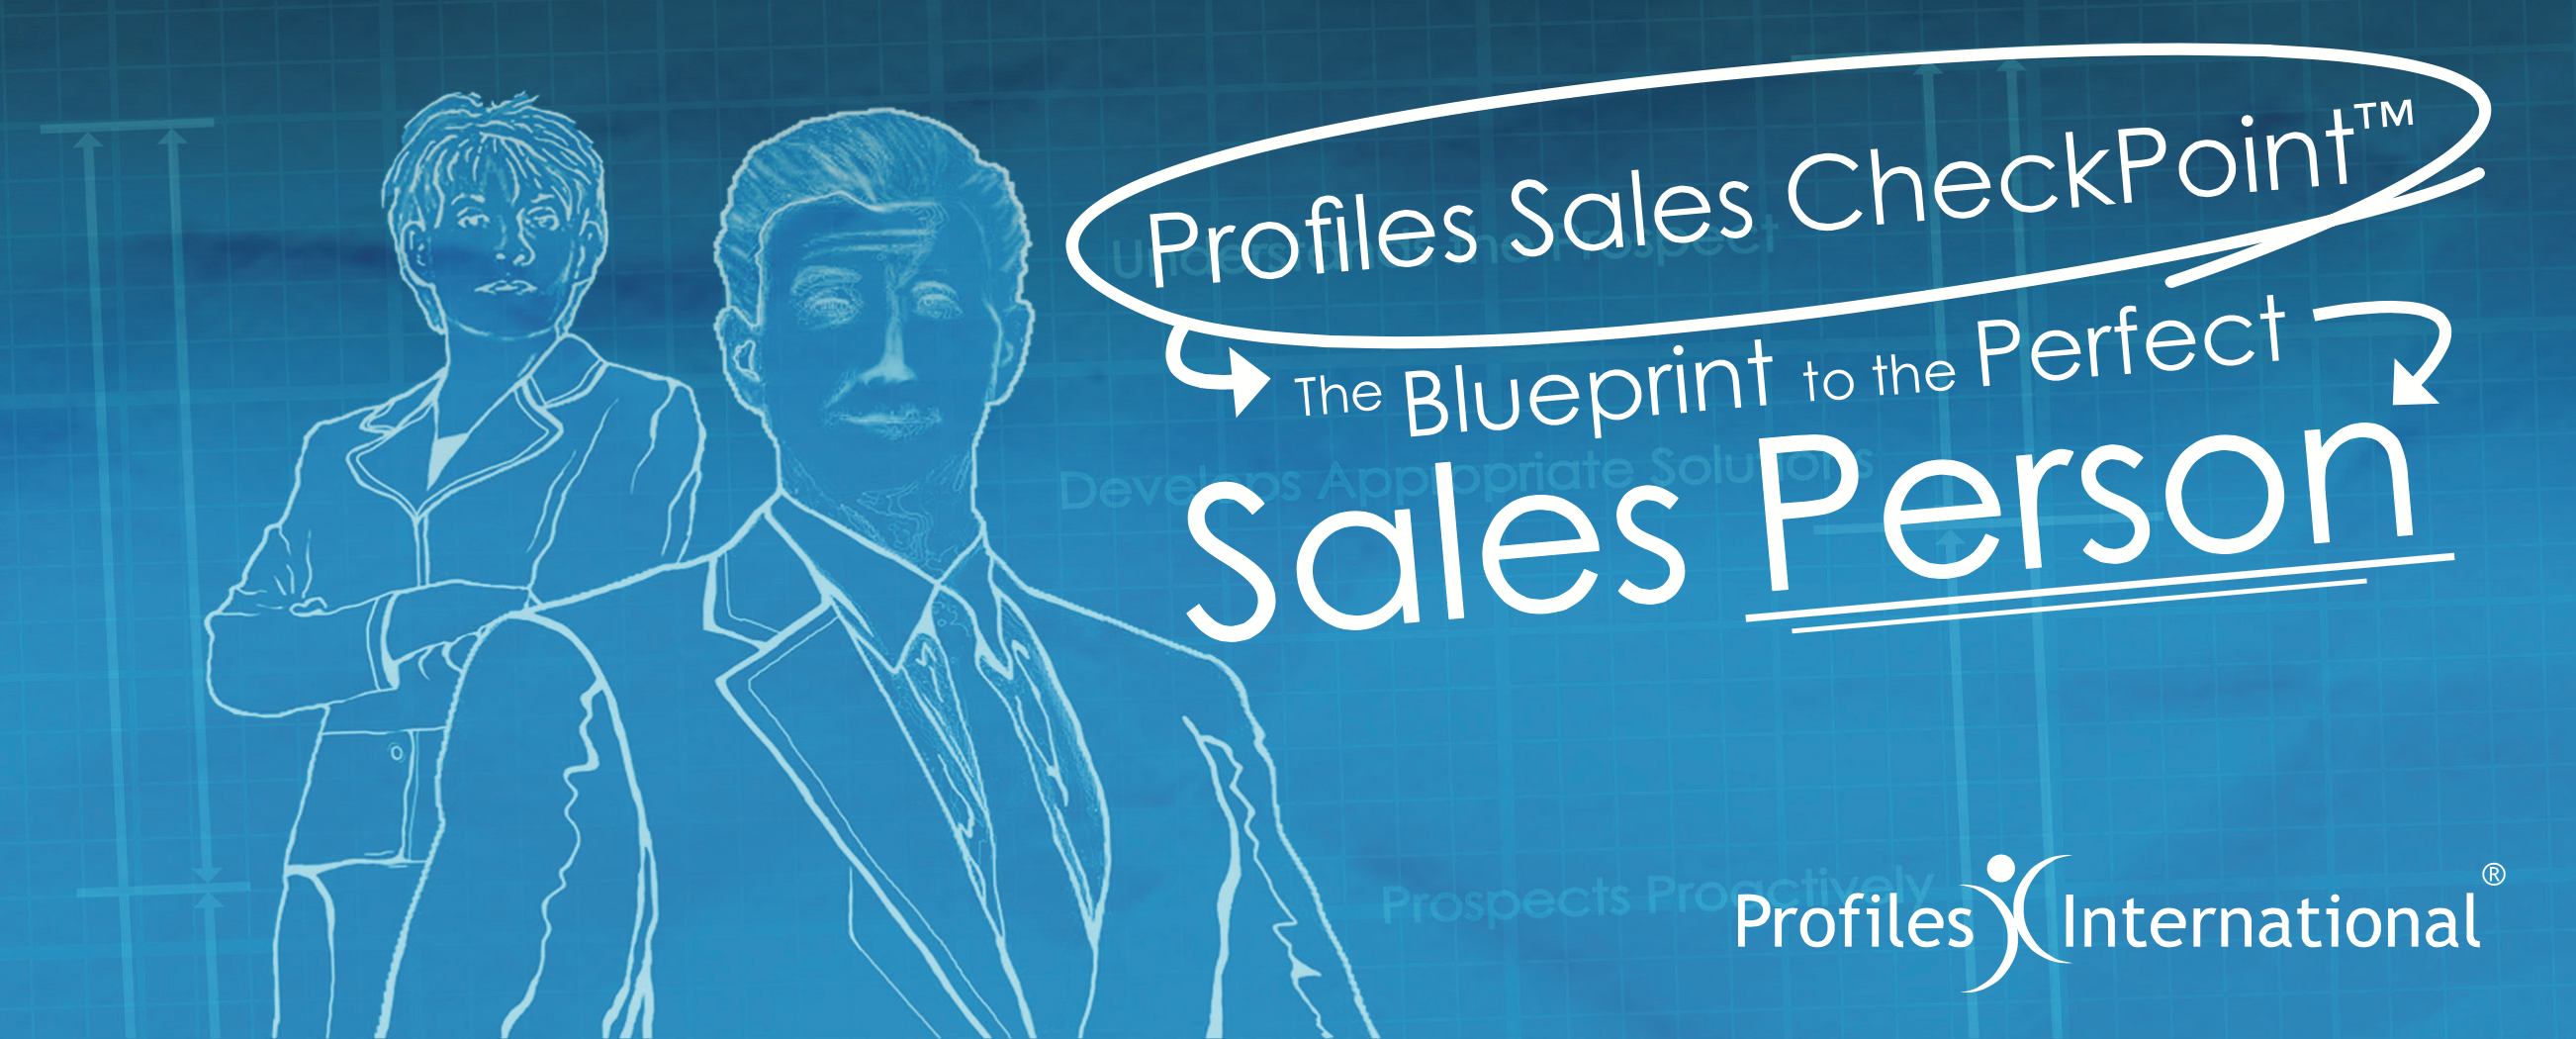 Profiles Sales CheckPoint